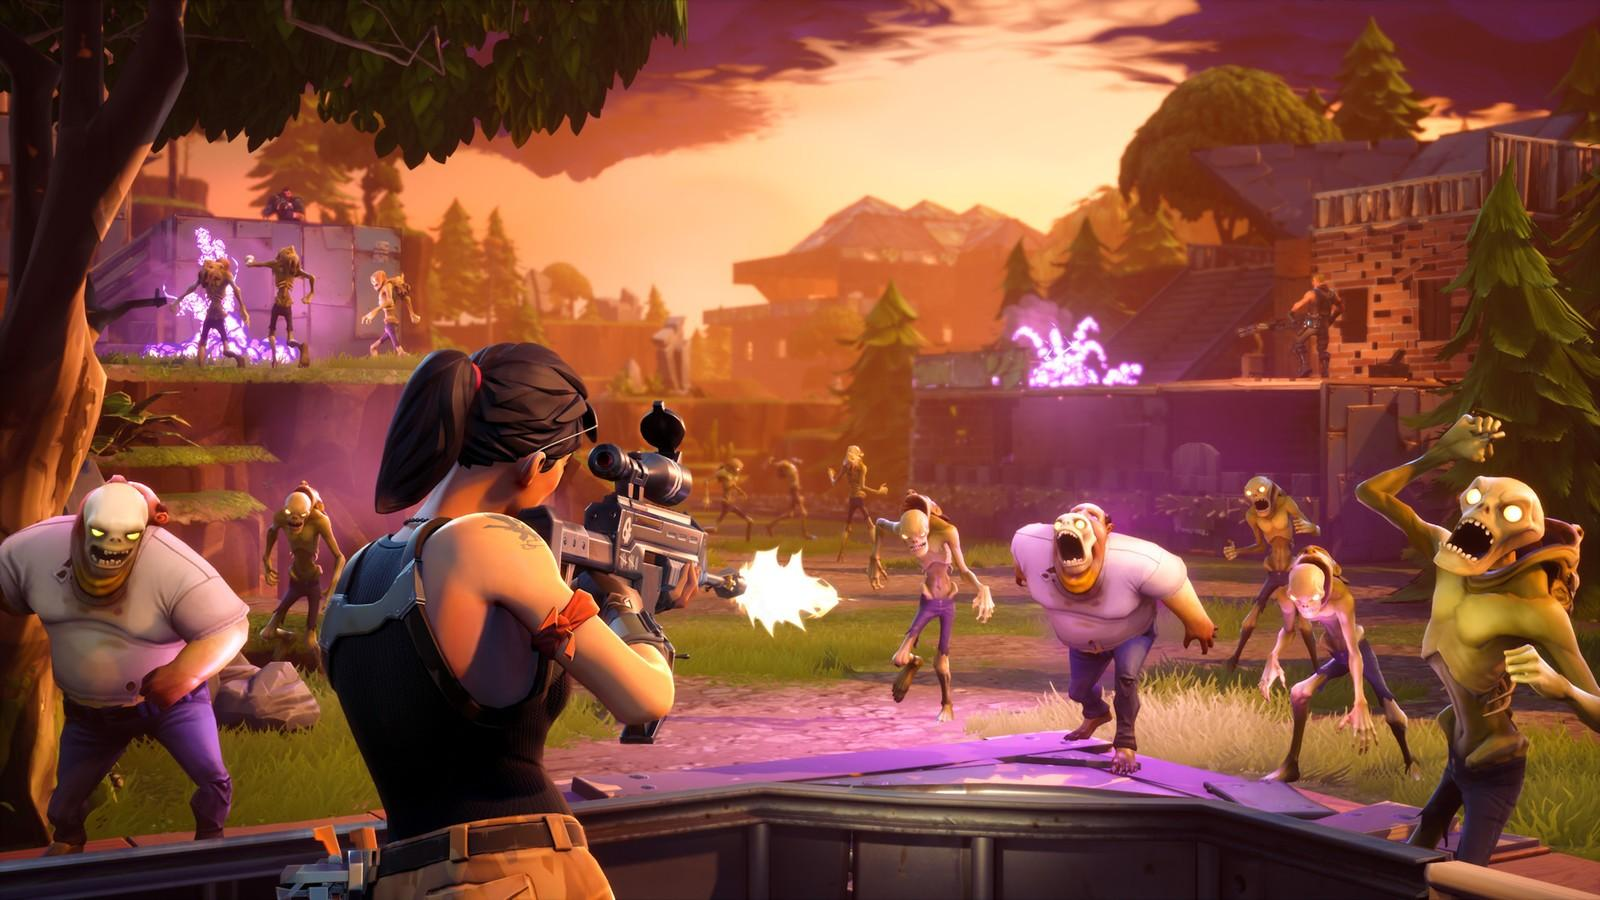 Fortnite Battle Royale getting new social features, inventory revamp